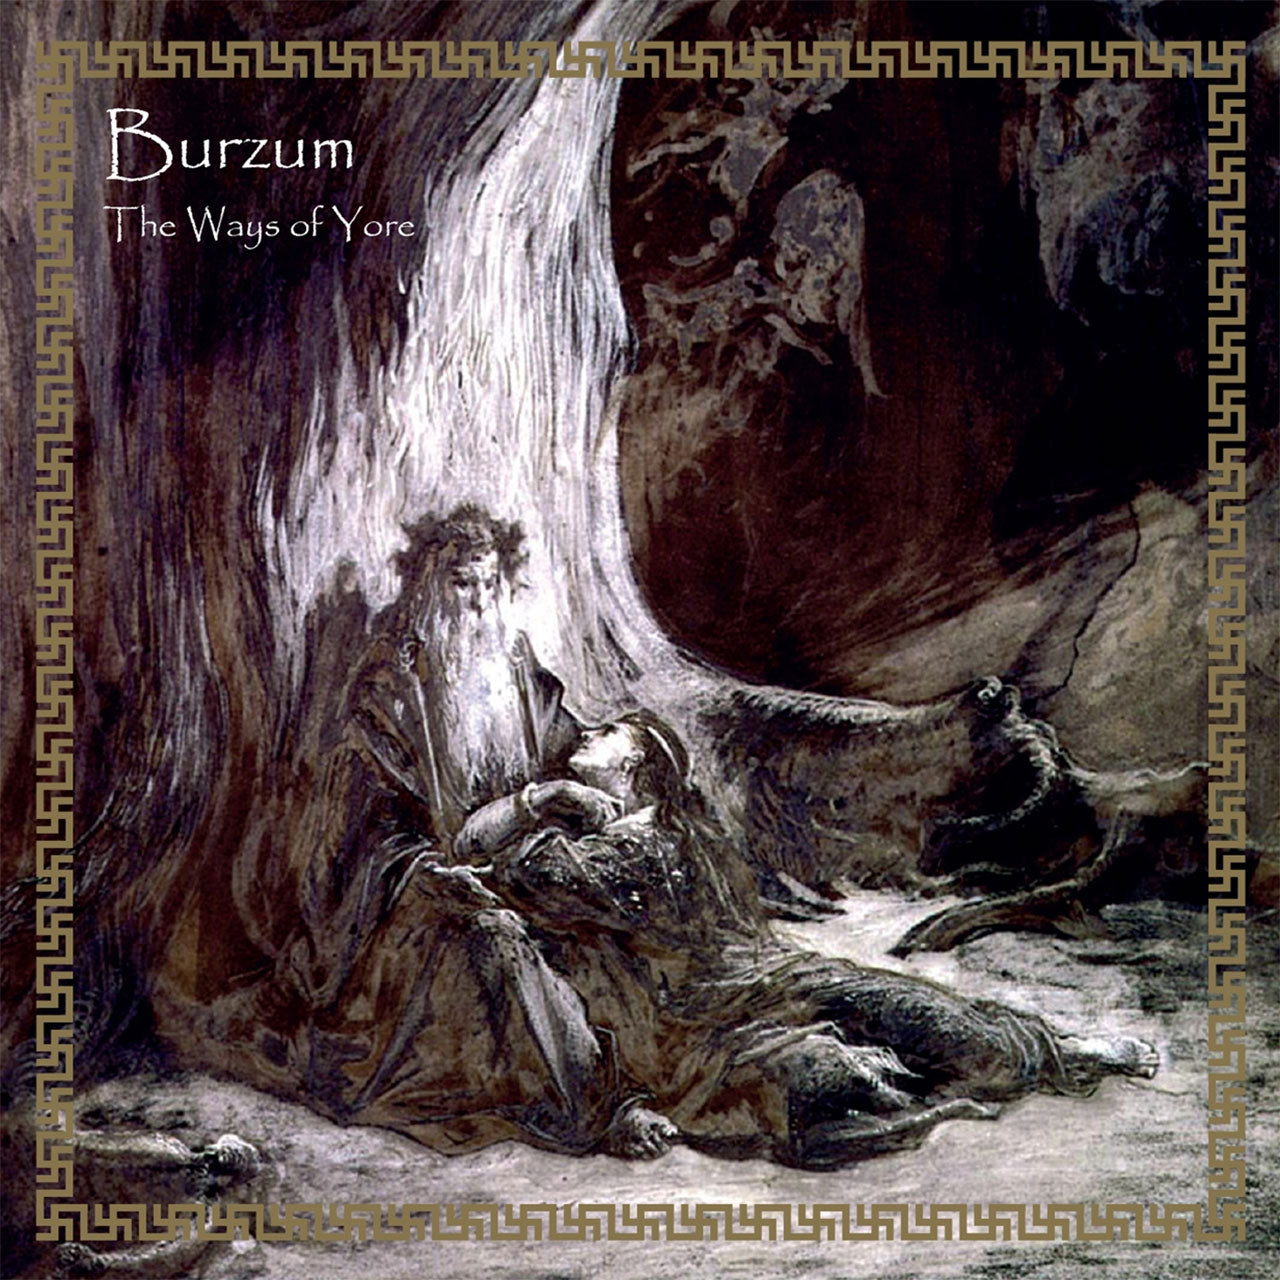 Burzum - The Ways of Yore (CD)